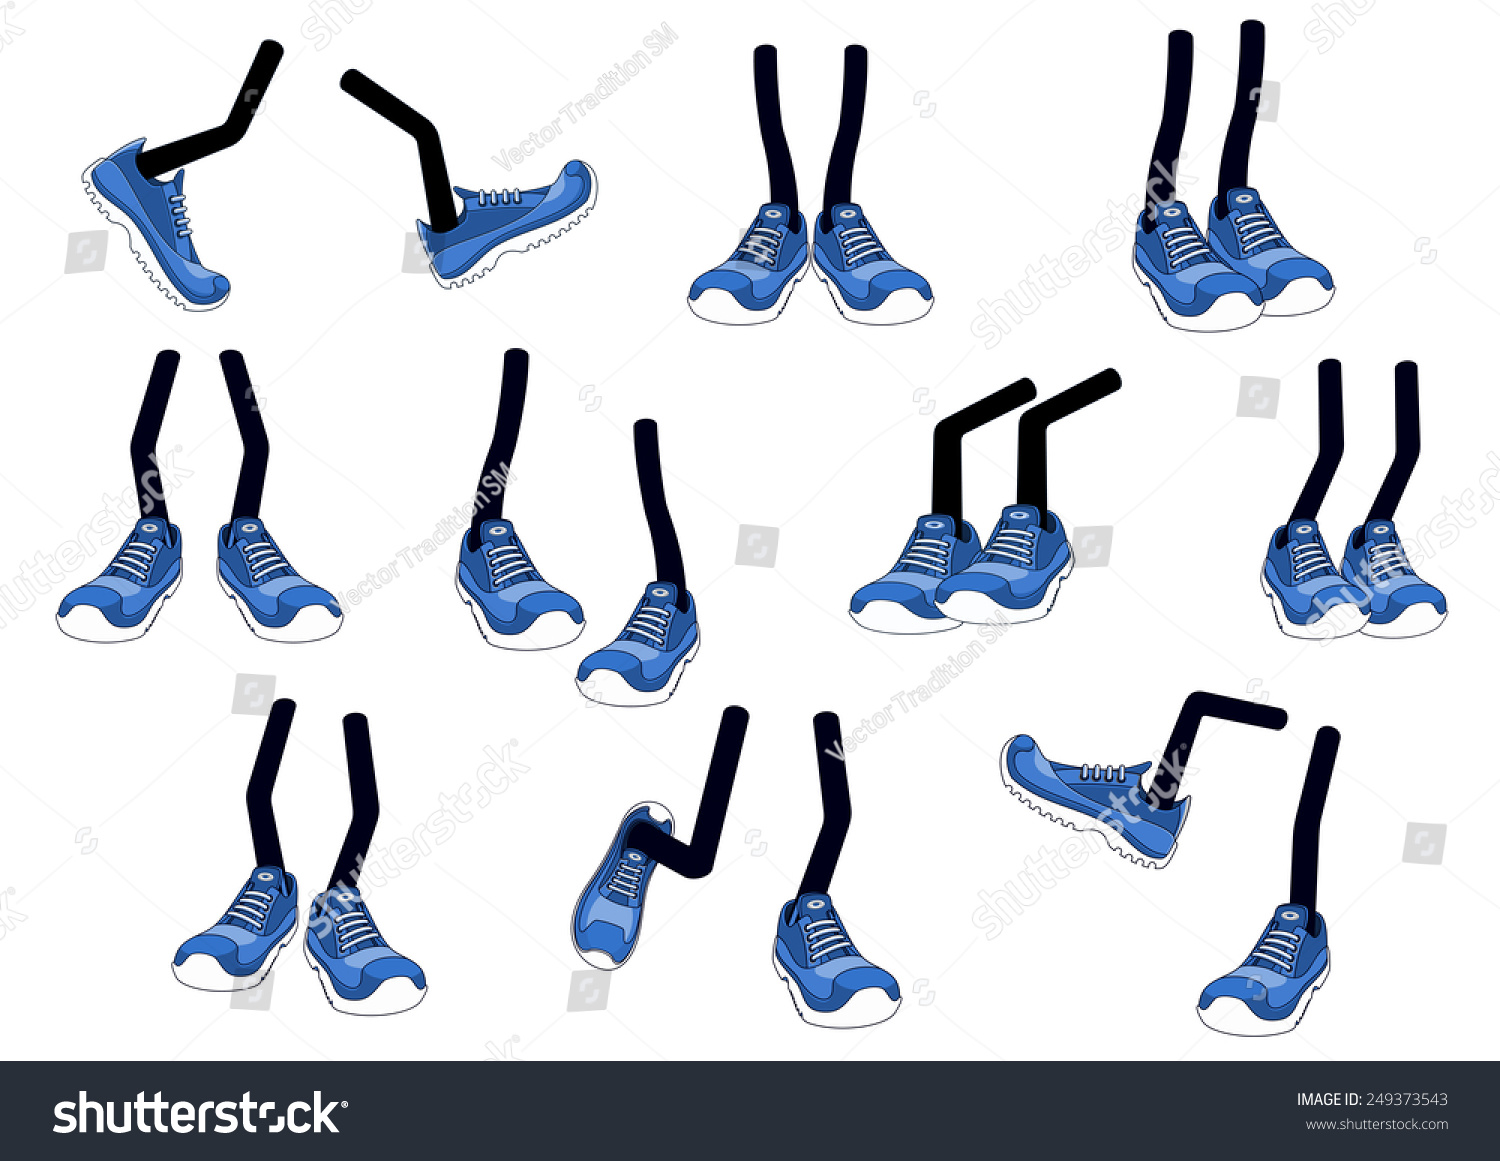 Cartoon vector walking feet in blue trainers or sneakers on stick legs in various positions #249373543